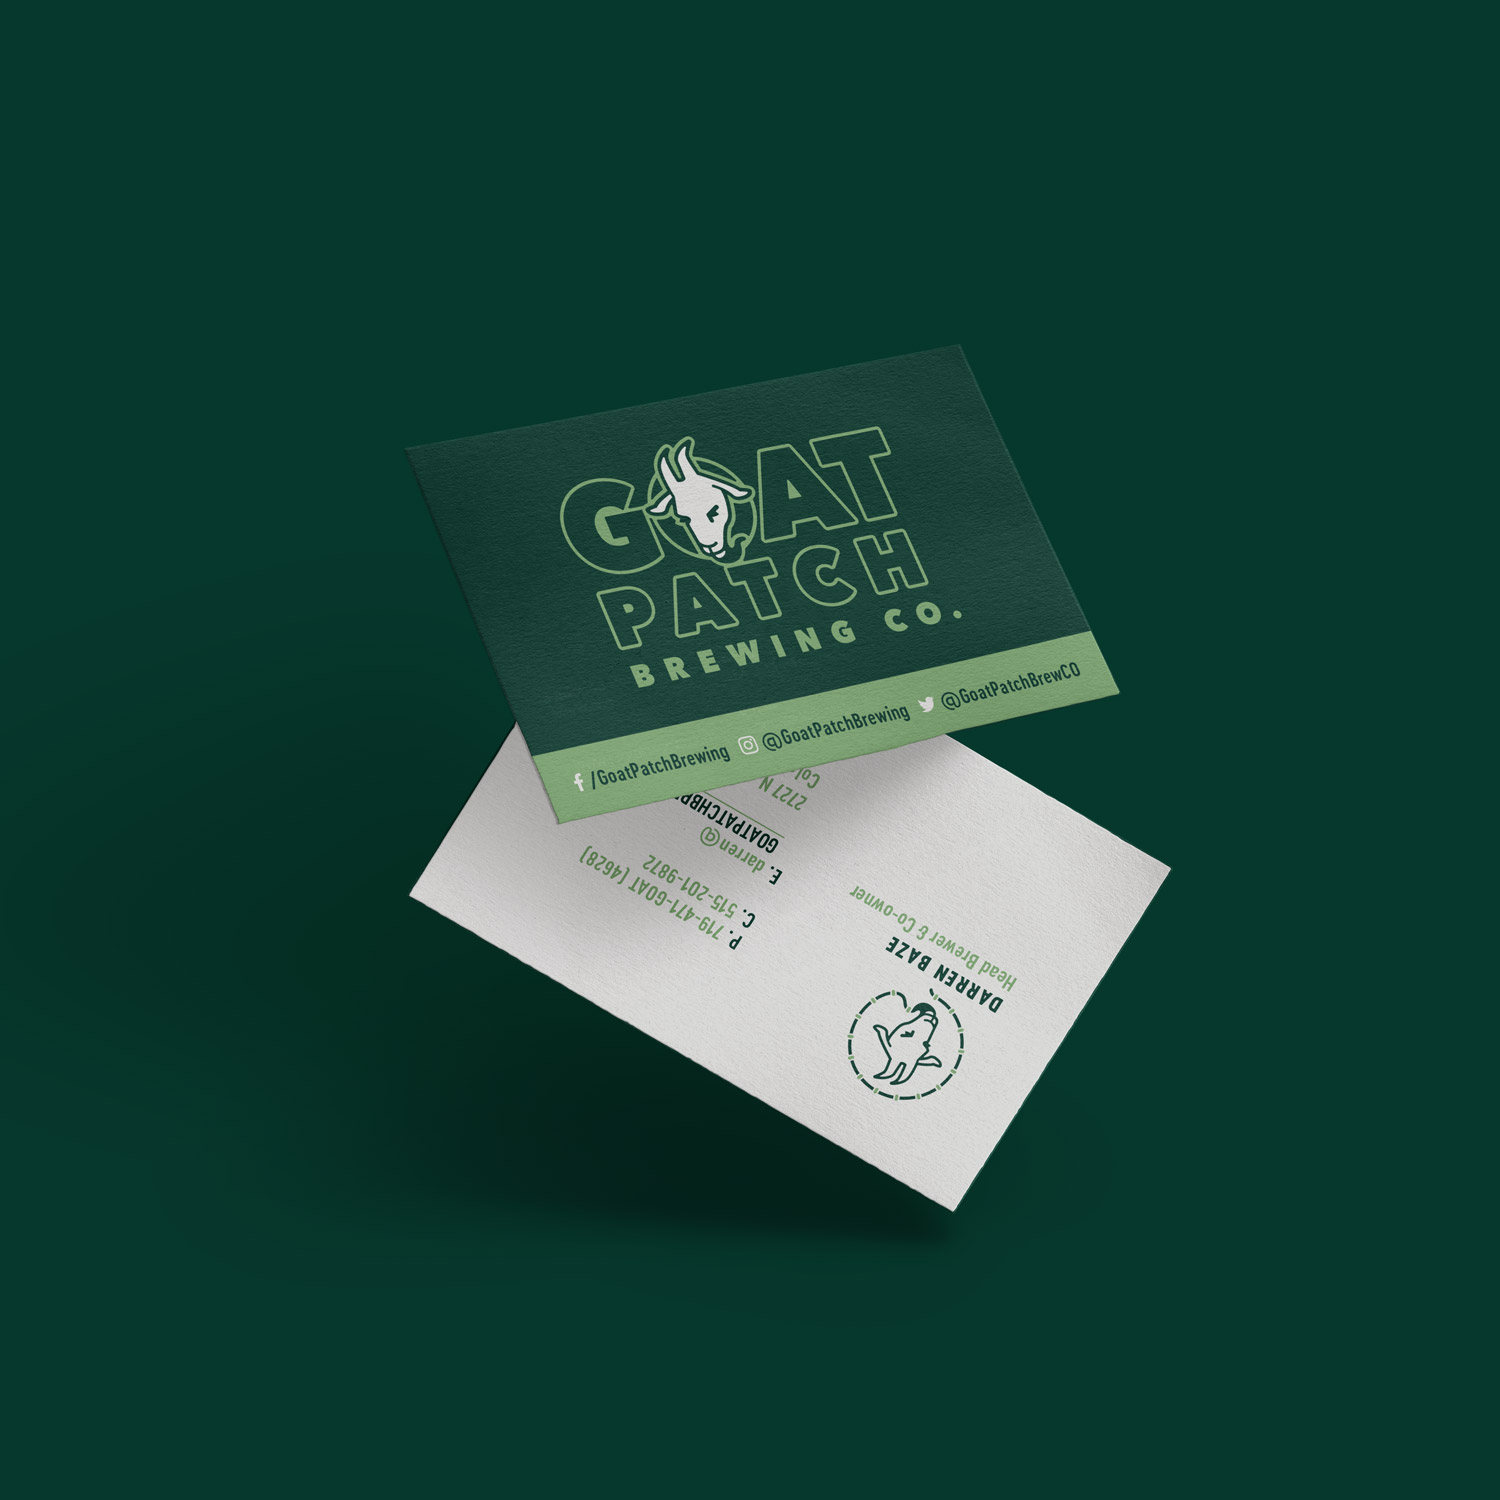 Brendan.Design_Goat-Patch-Brewing-Co_Business-Cards